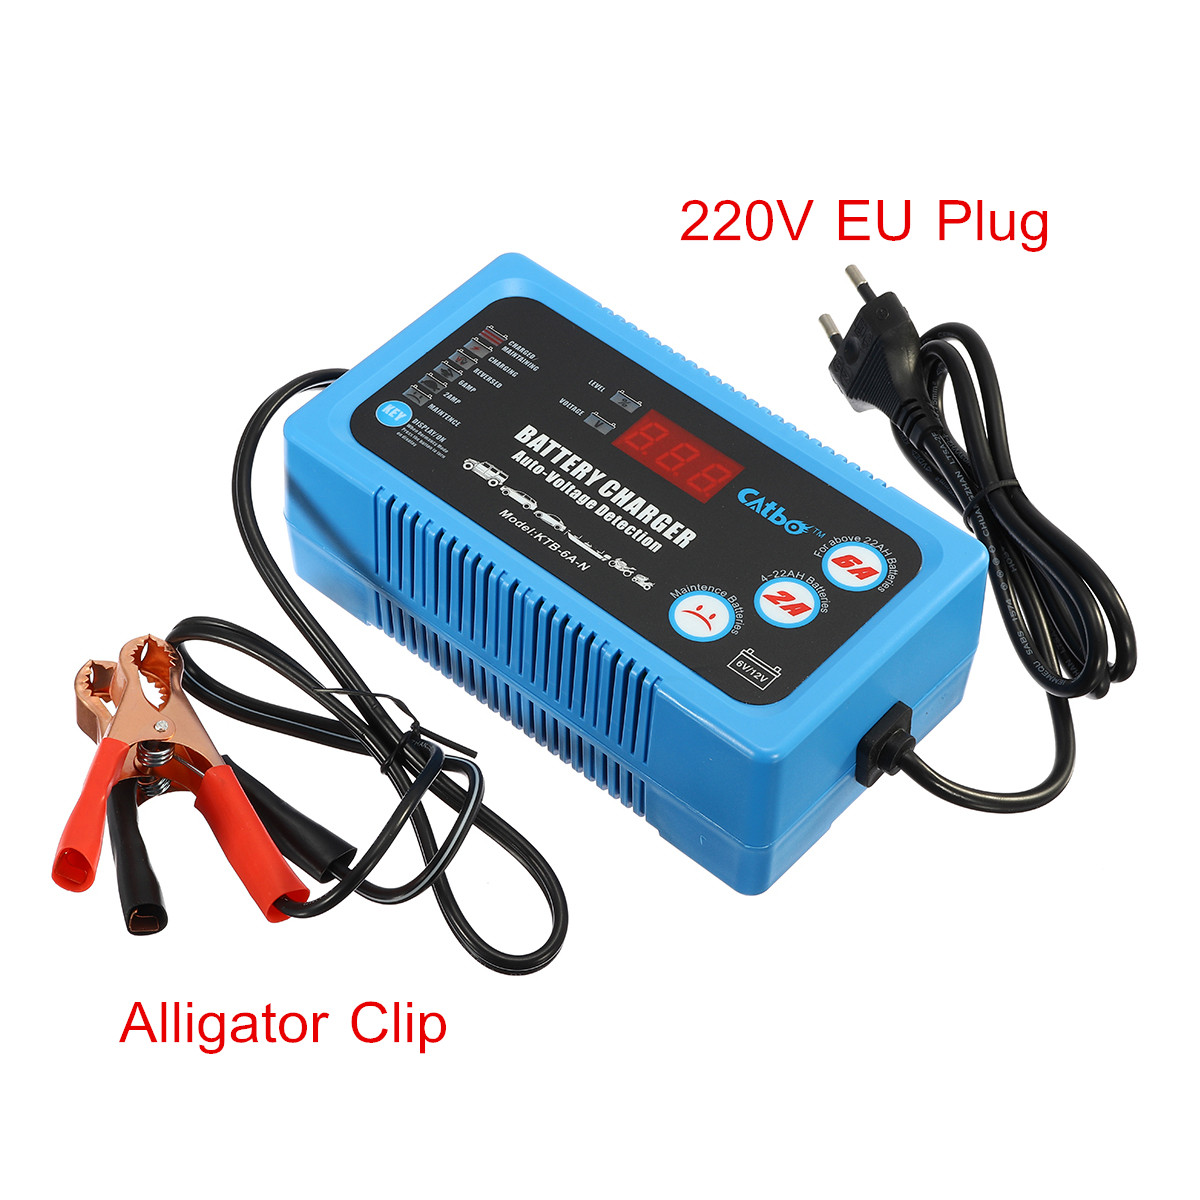 220V 6V/12V 120AH Car Battery Charger Automatic Intelligent Pulse Repair  Type Digital Display Heat Radiator Control Energy Save